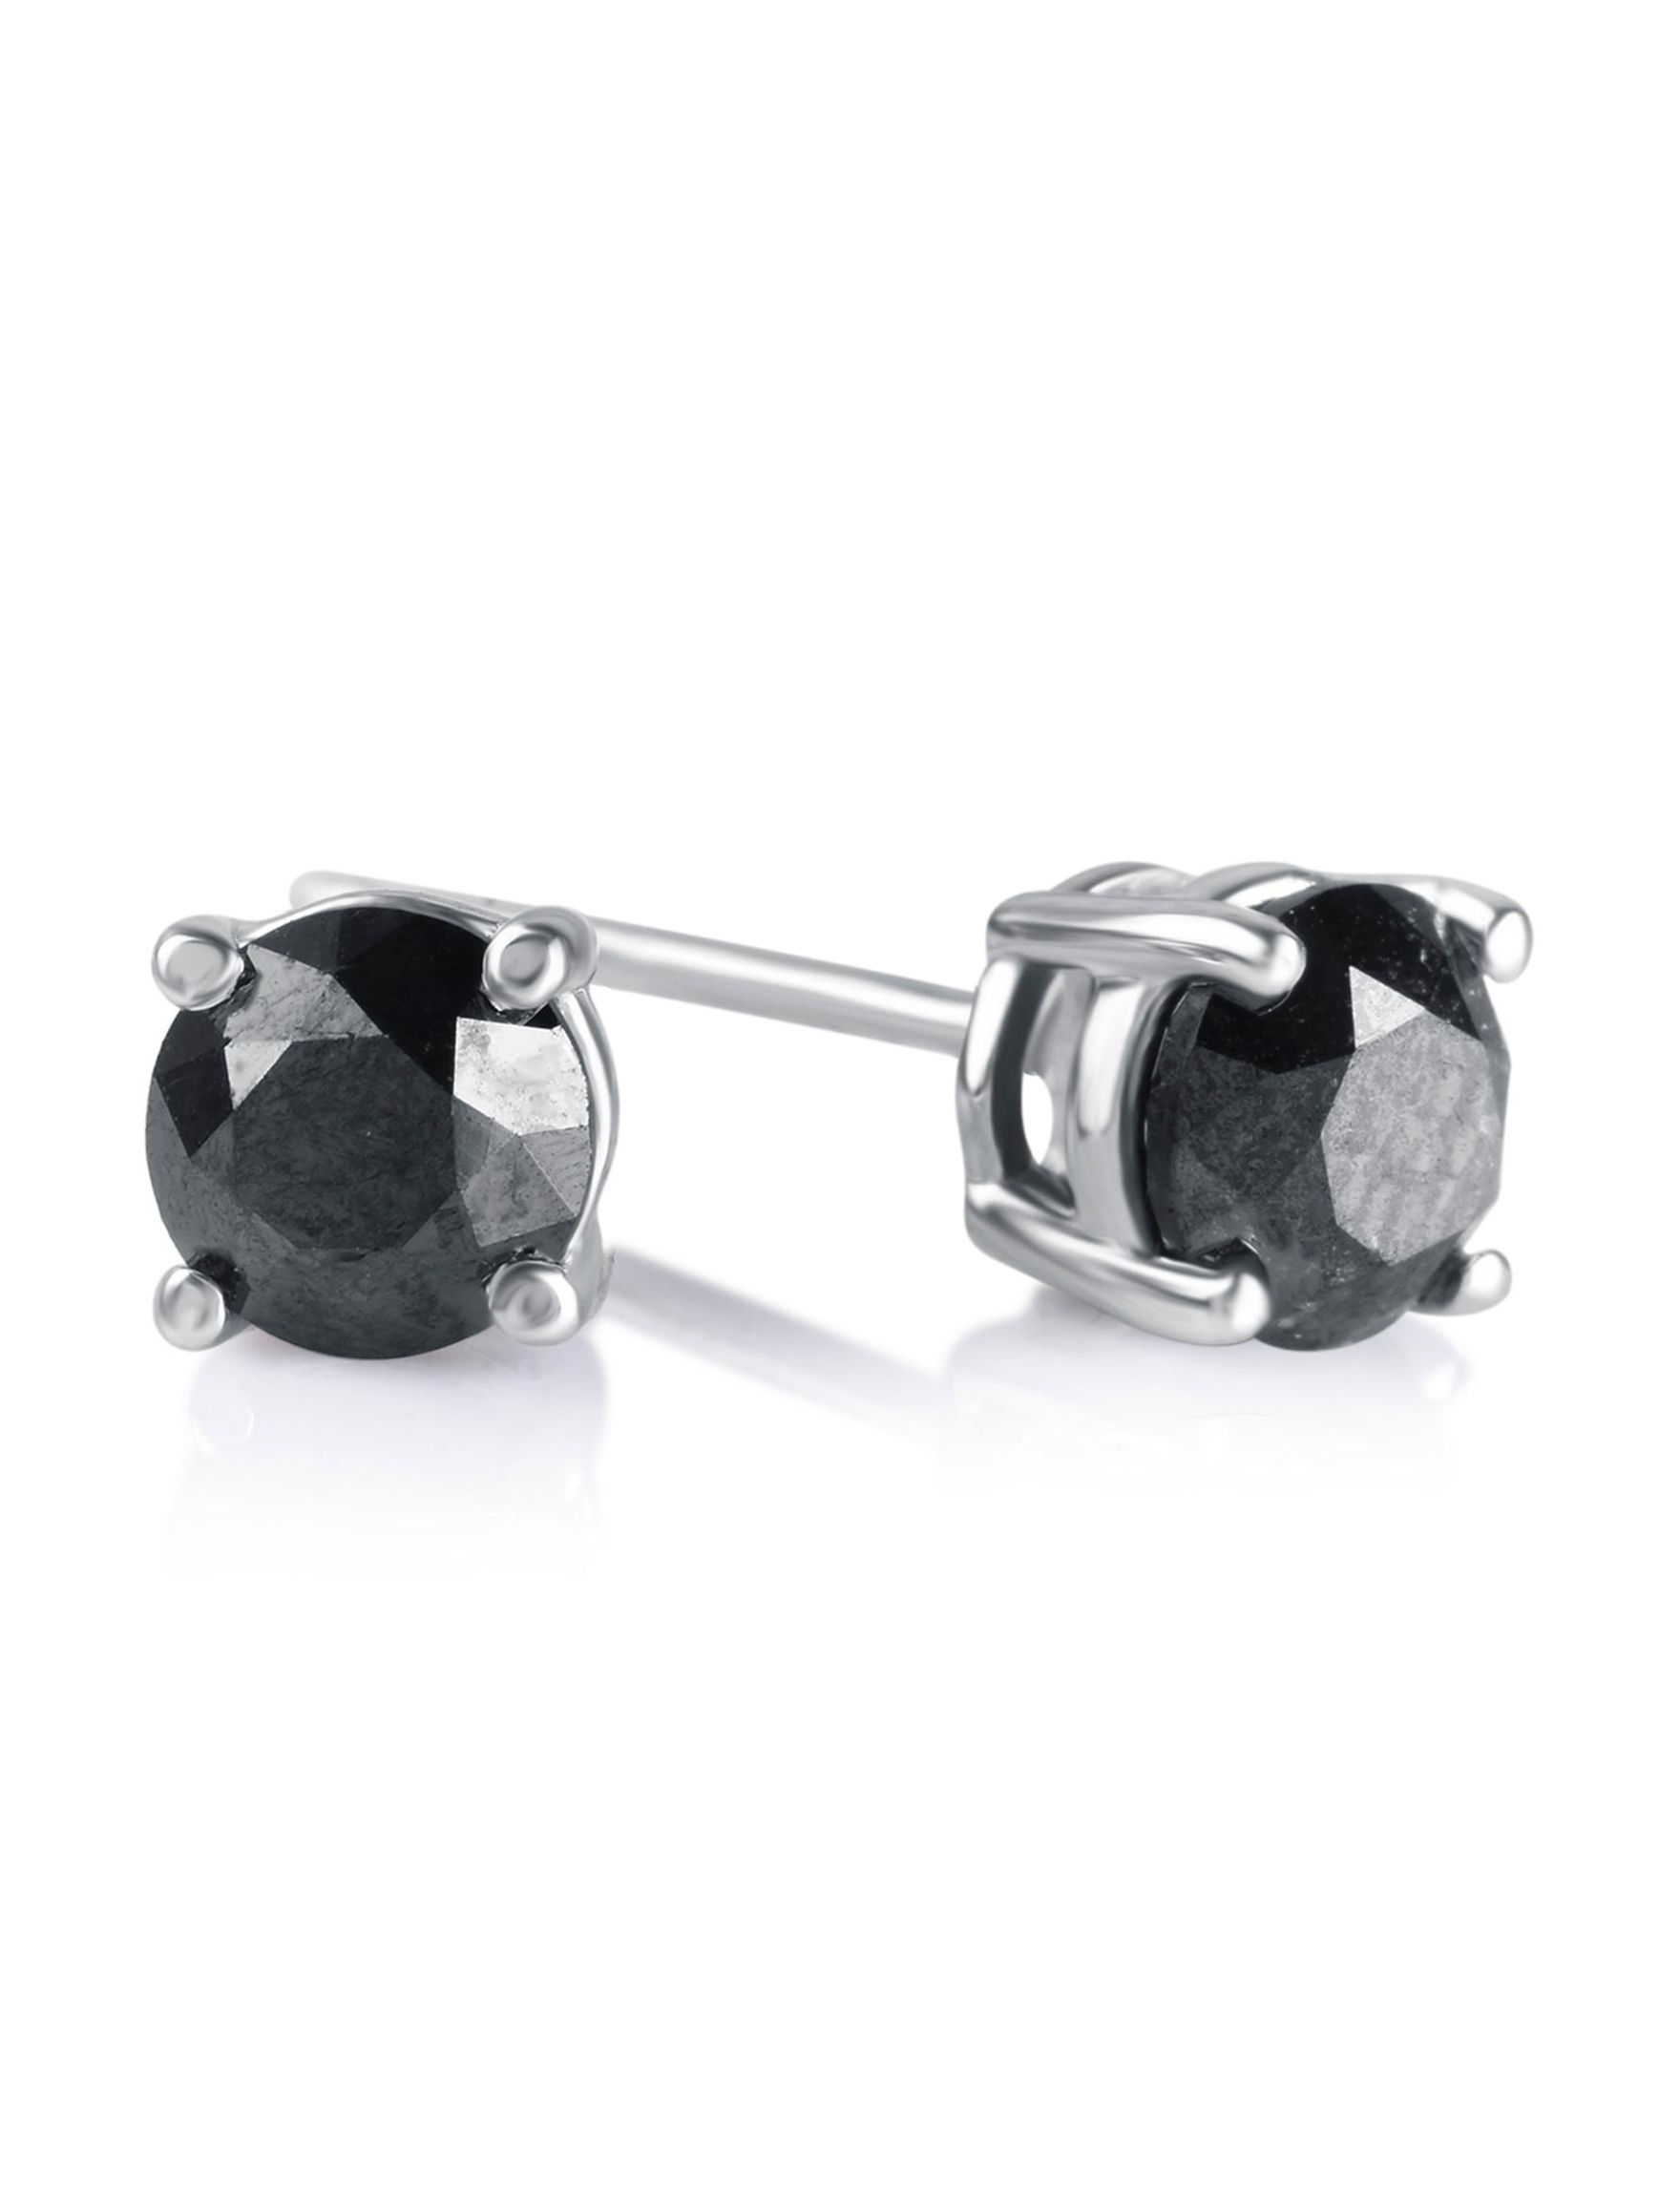 Brilliant Diamond Silver Studs Earrings Fine Jewelry